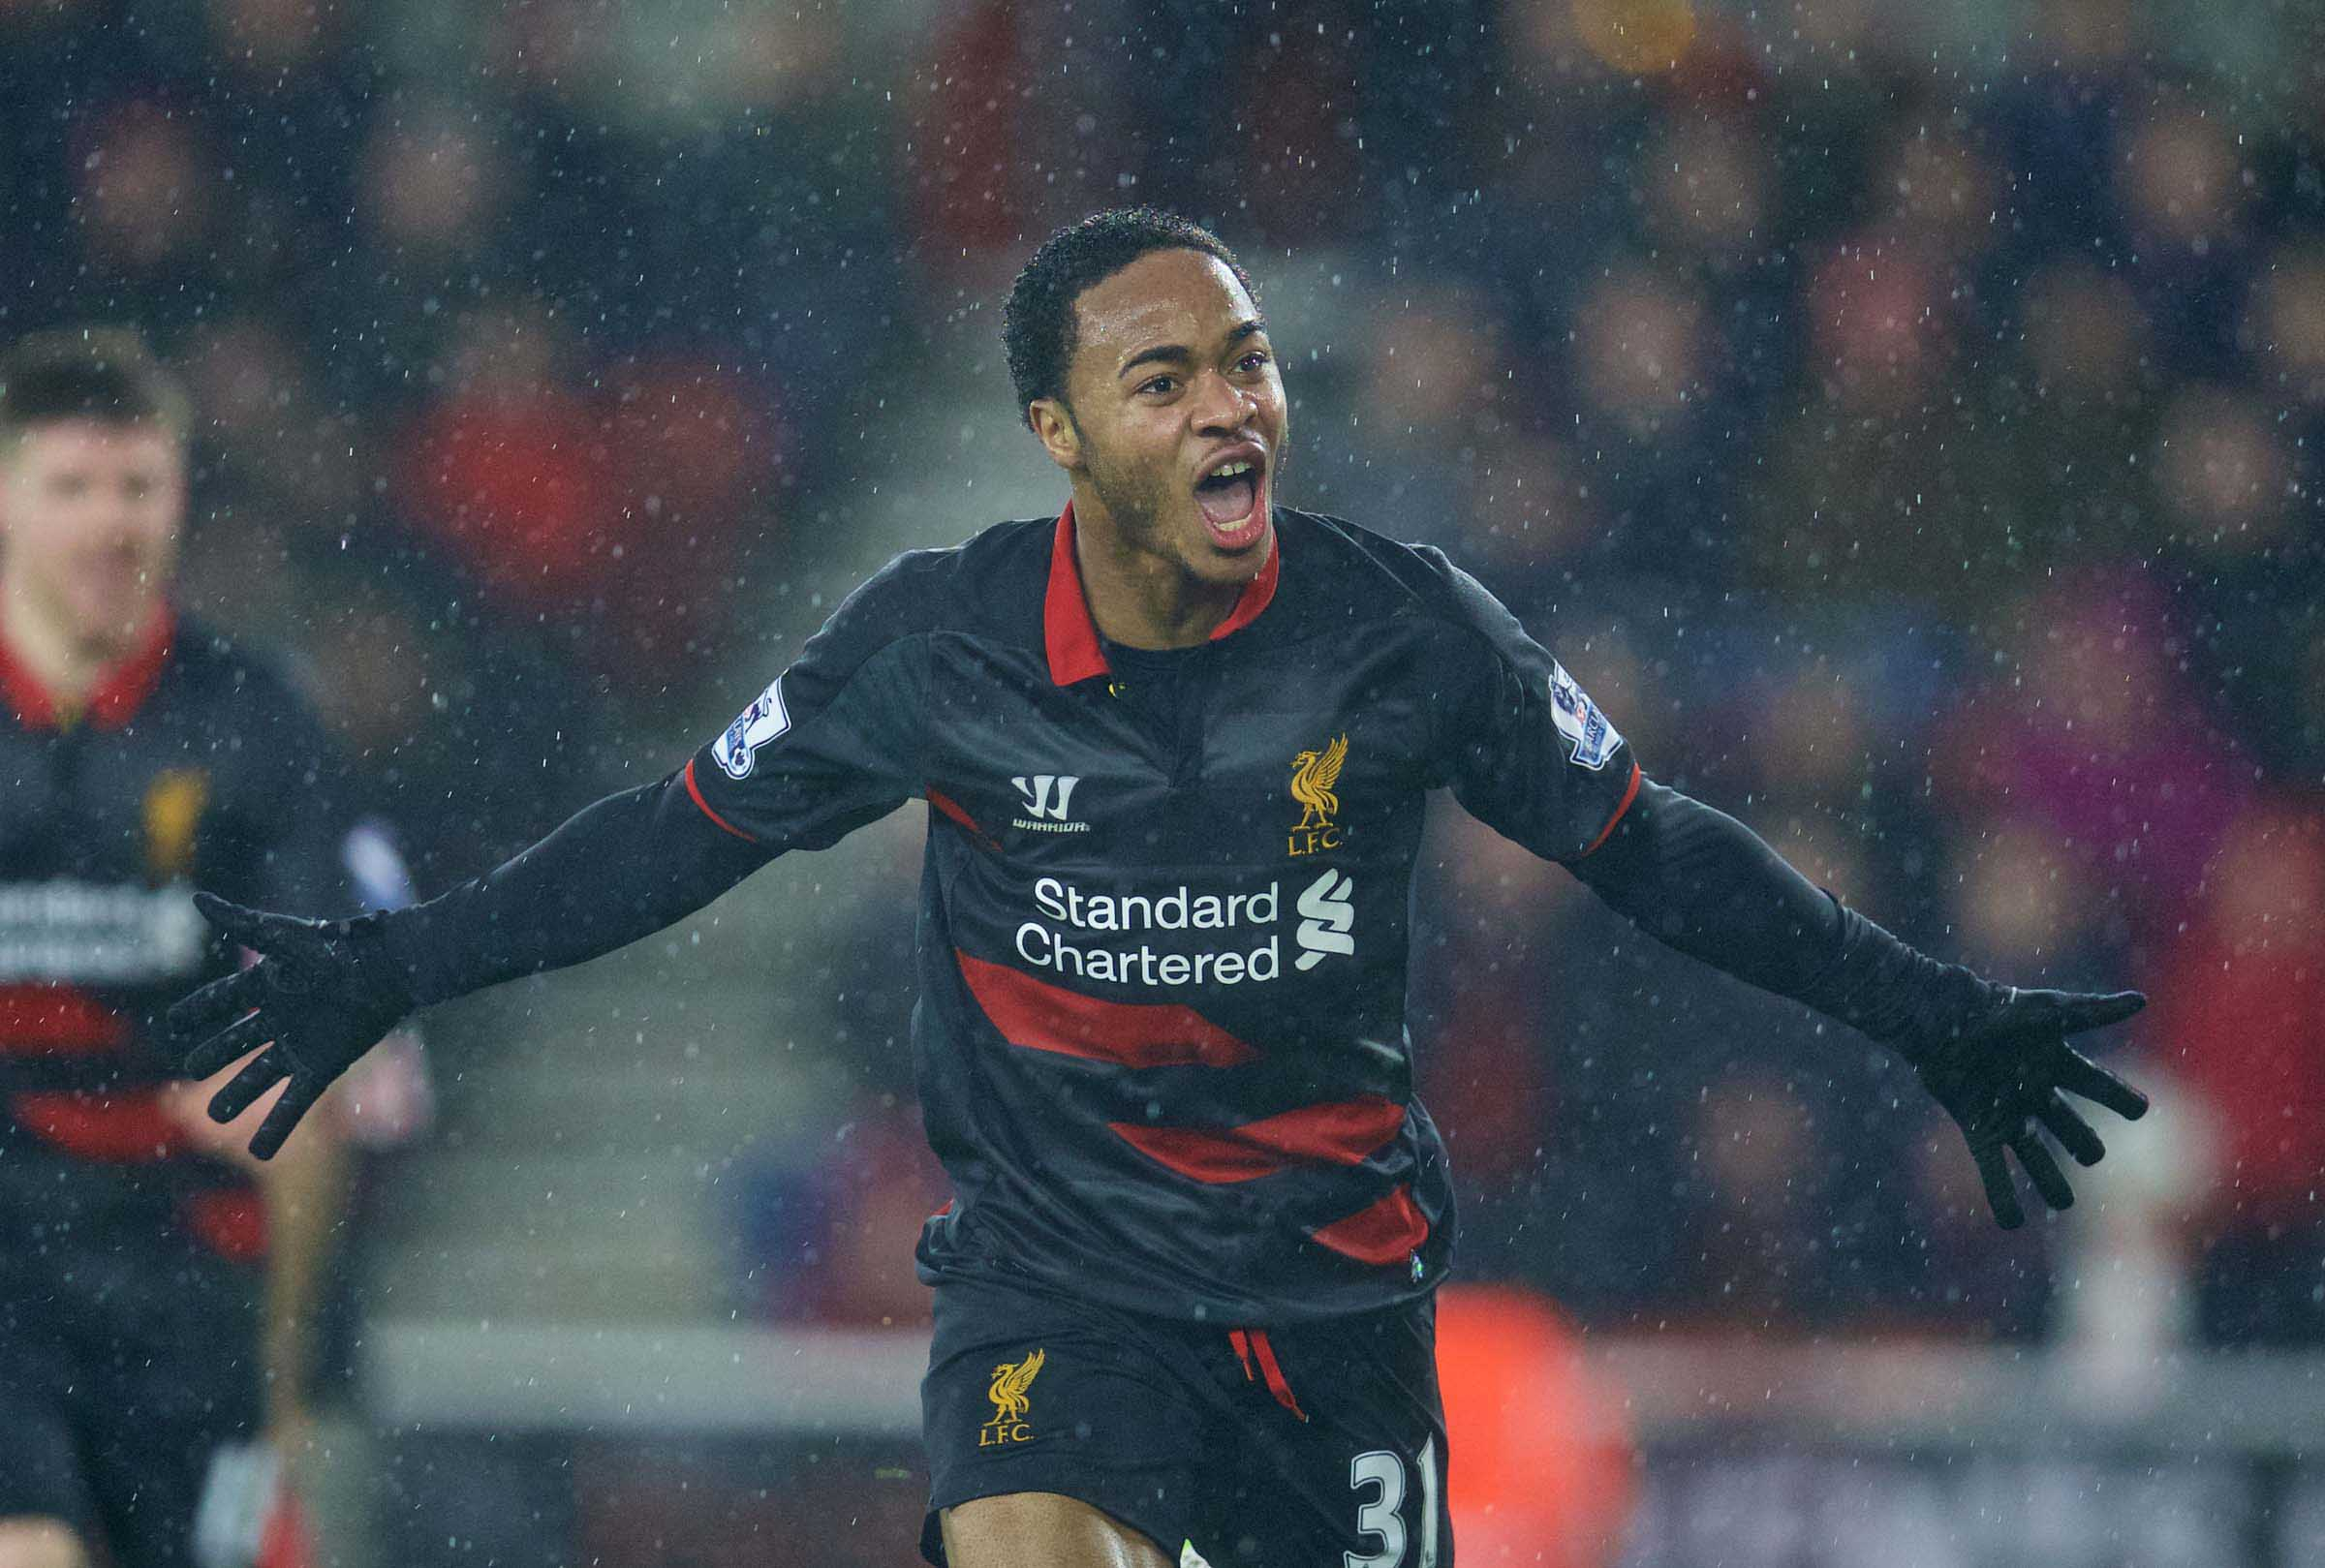 RAHEEM STERLING: WHAT'S HIS BEST POSITION?